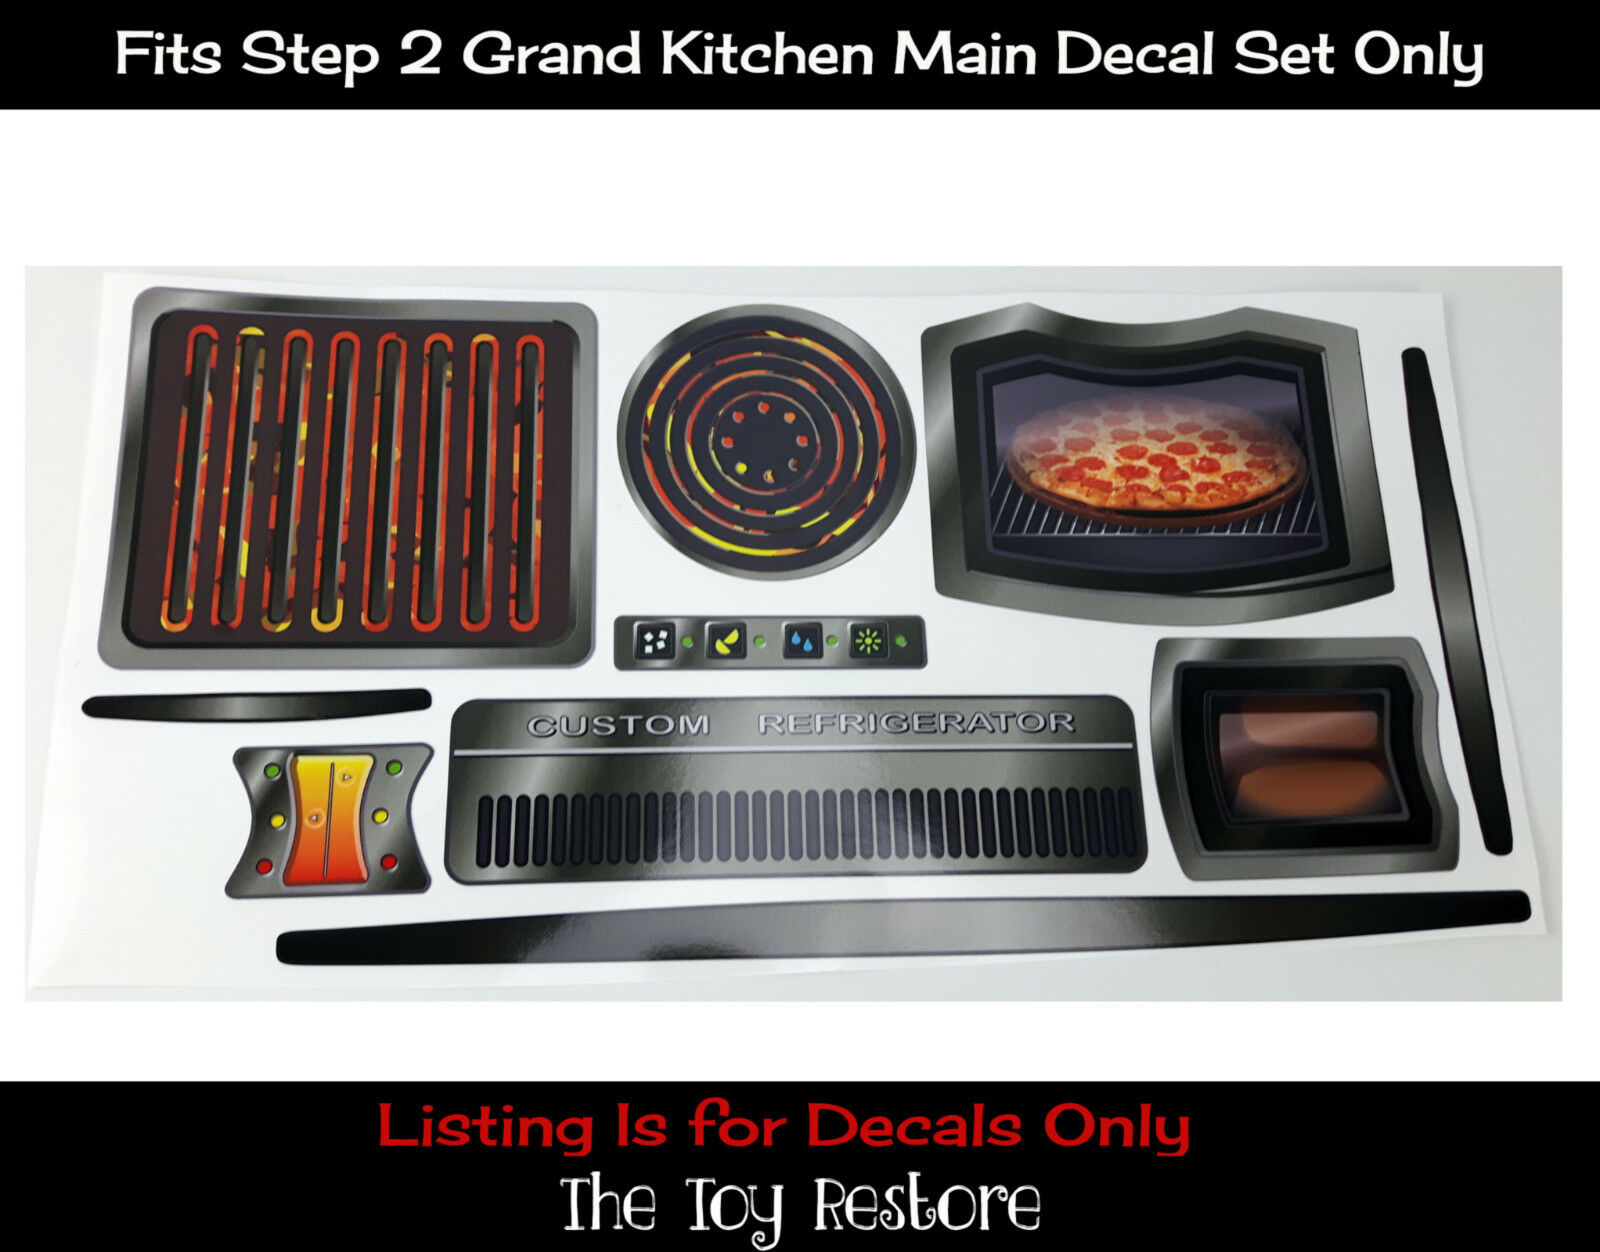 Replacement Decals Stickers Fits Step 2 Grand Walk in Kitchen Main